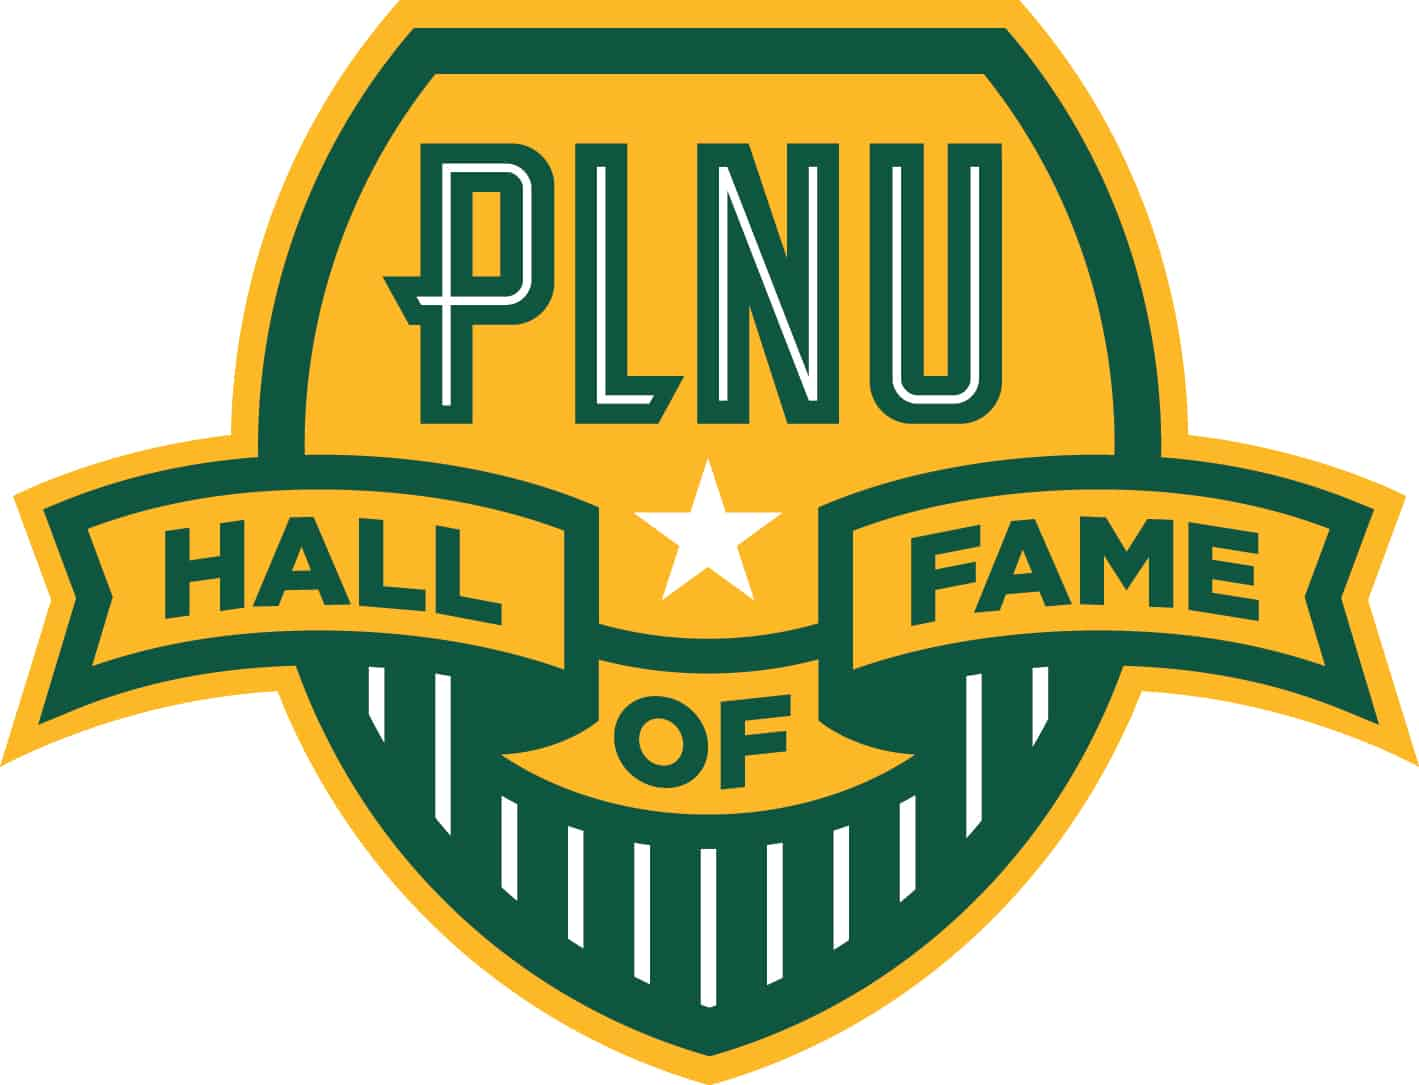 College Hall of Fame